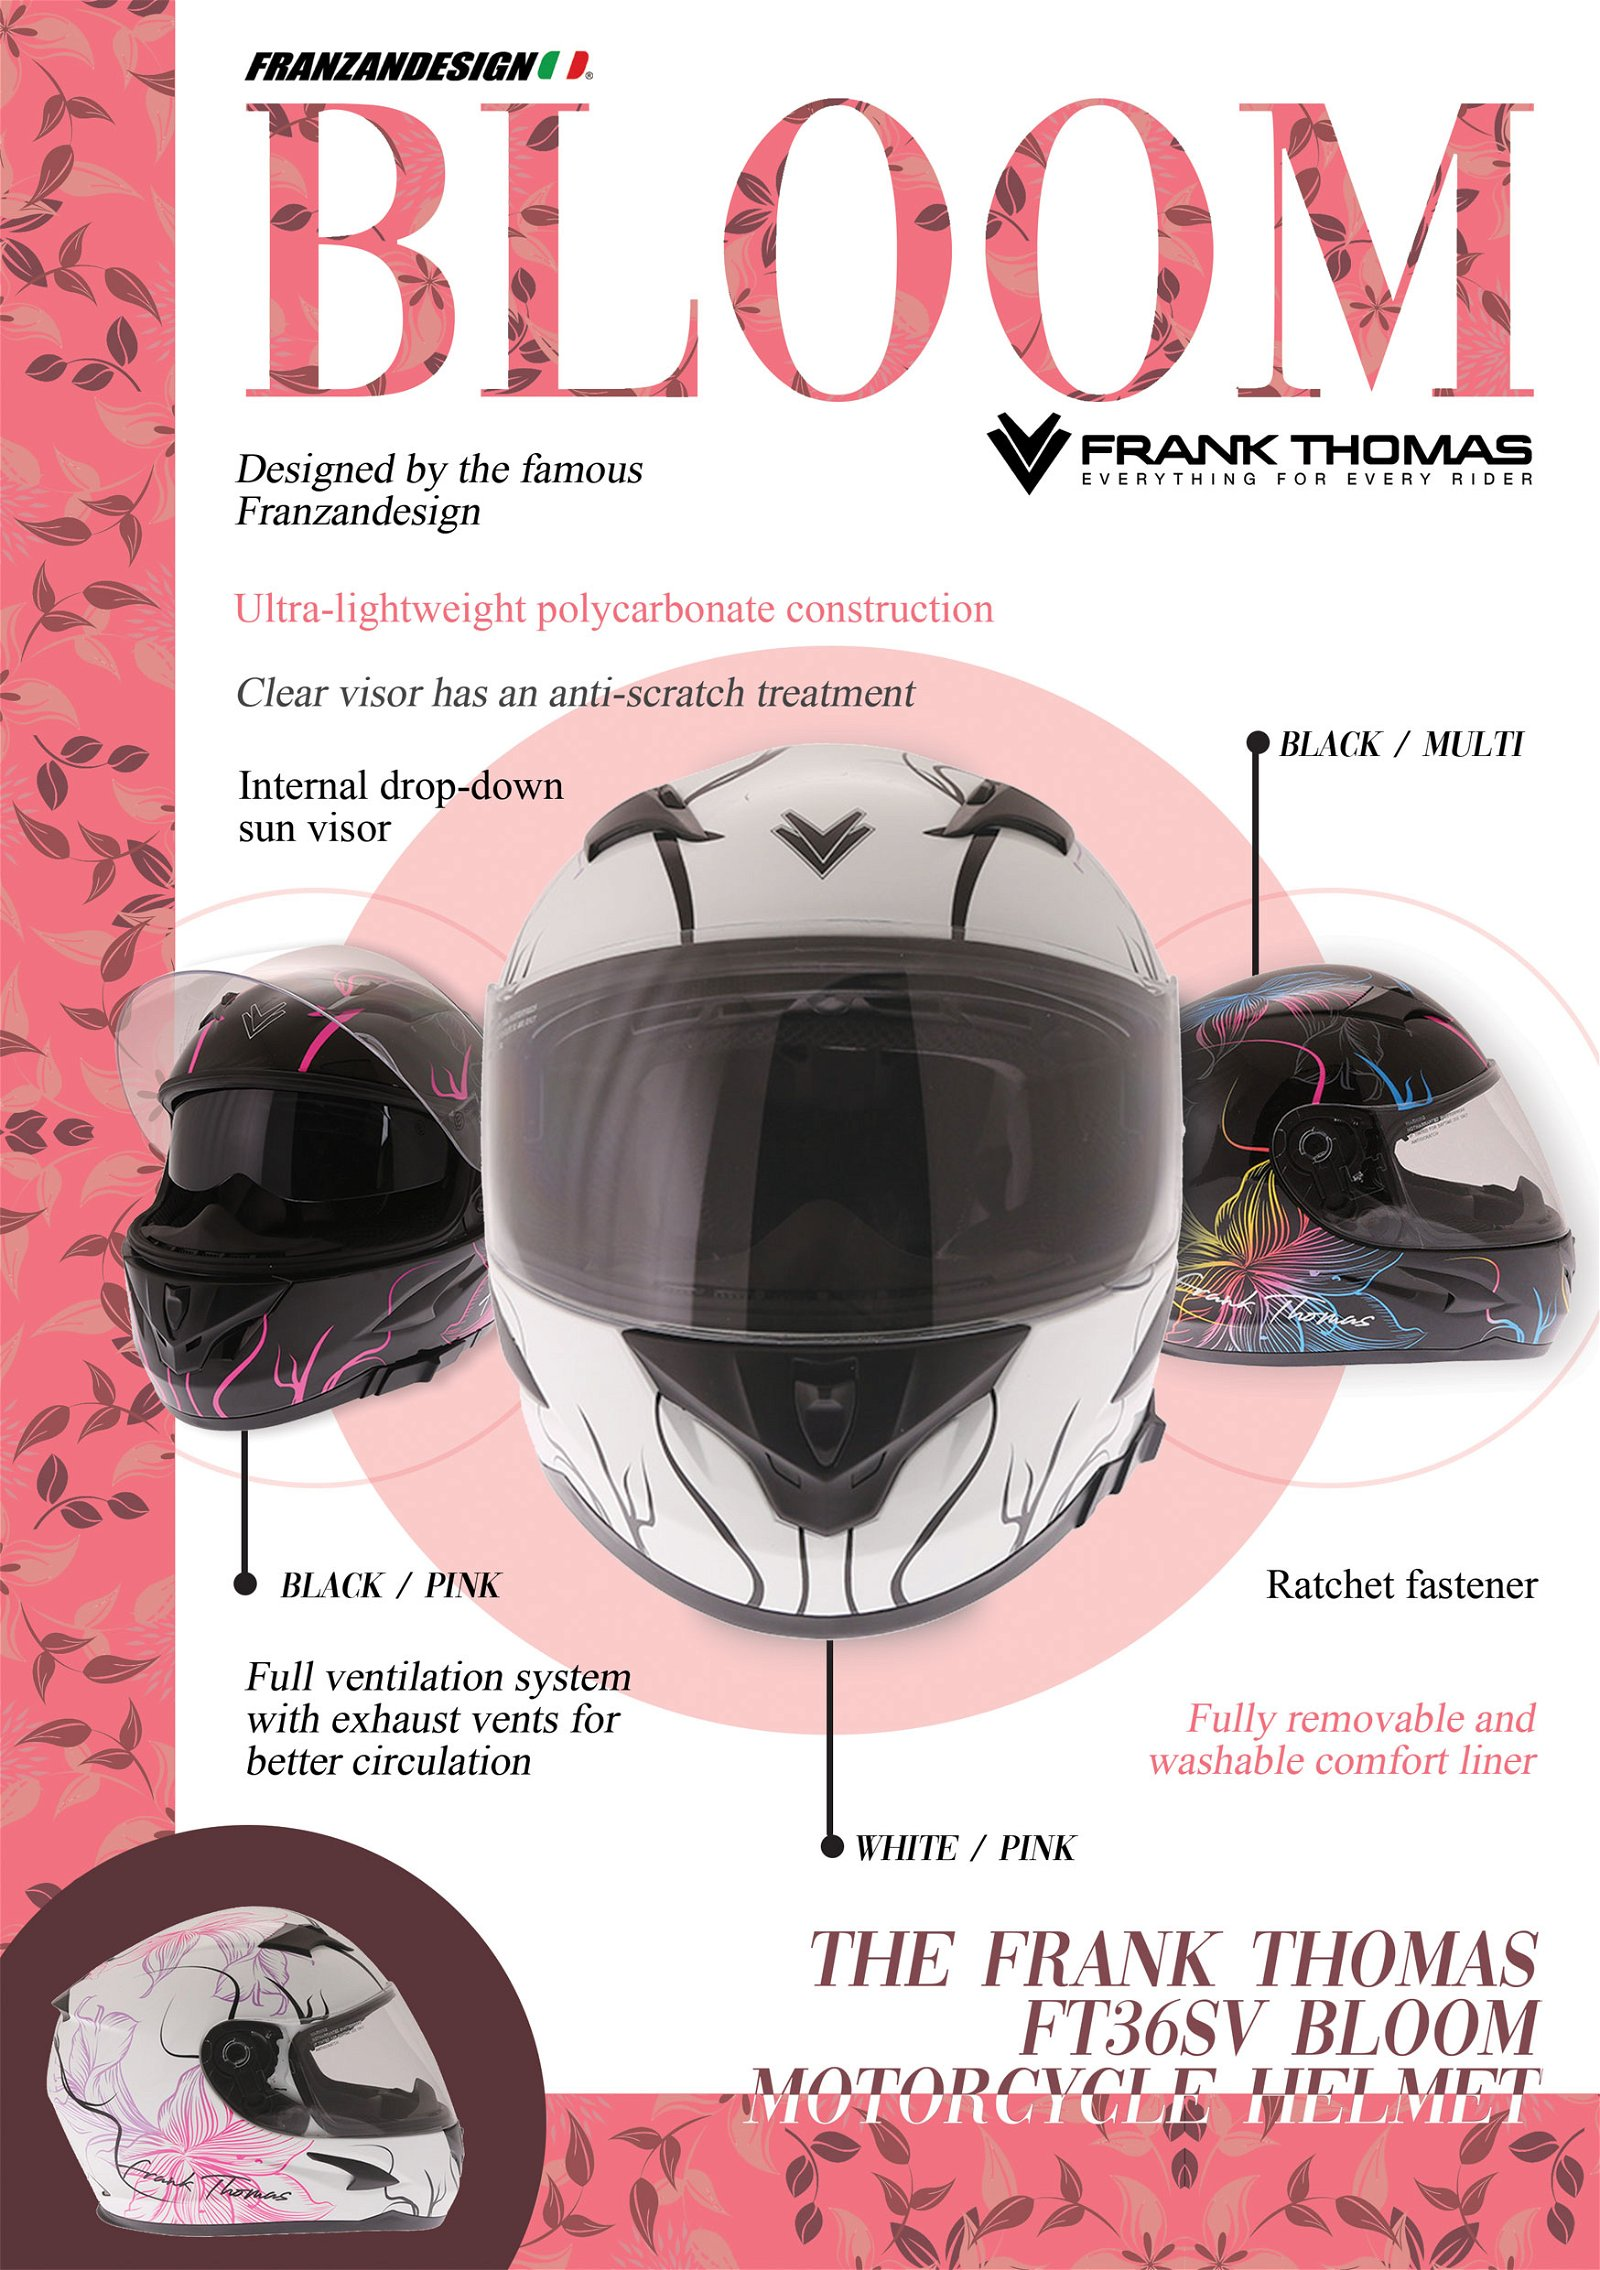 The Frank Thomas Bloom Collection